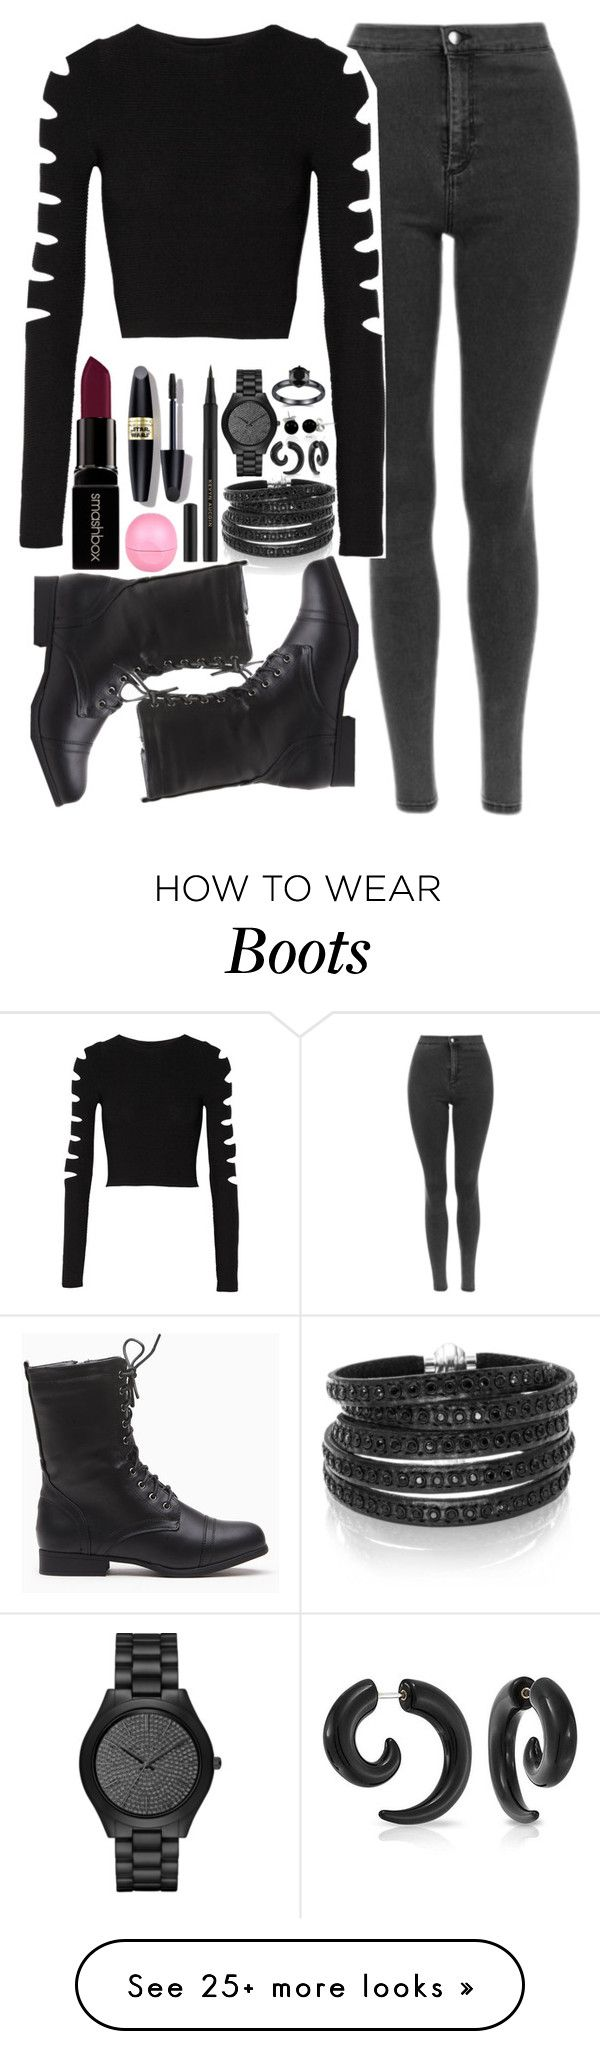 """Shadowhunter Style"" by lalalasprinkles on Polyvore featuring Sif Jakobs Jewellery, Cushnie Et Ochs, Bling Jewelry, Smashbox, River Island, Max Factor, Kevyn Aucoin, Michael Kors, women's clothing and women's fashion"